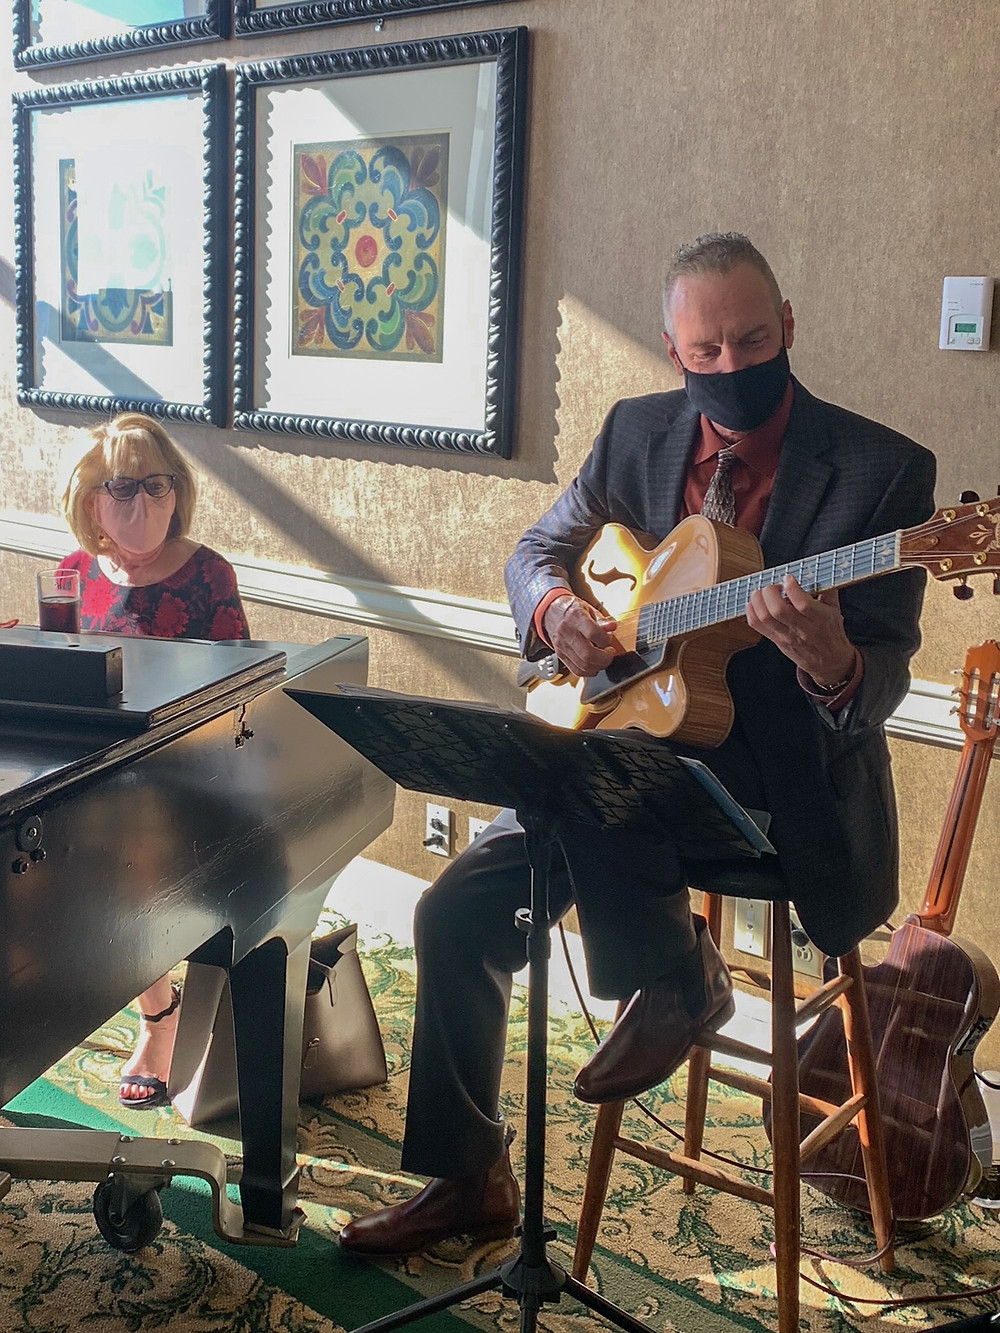 Guitar/piano duo at Ft. Worth Club brunch